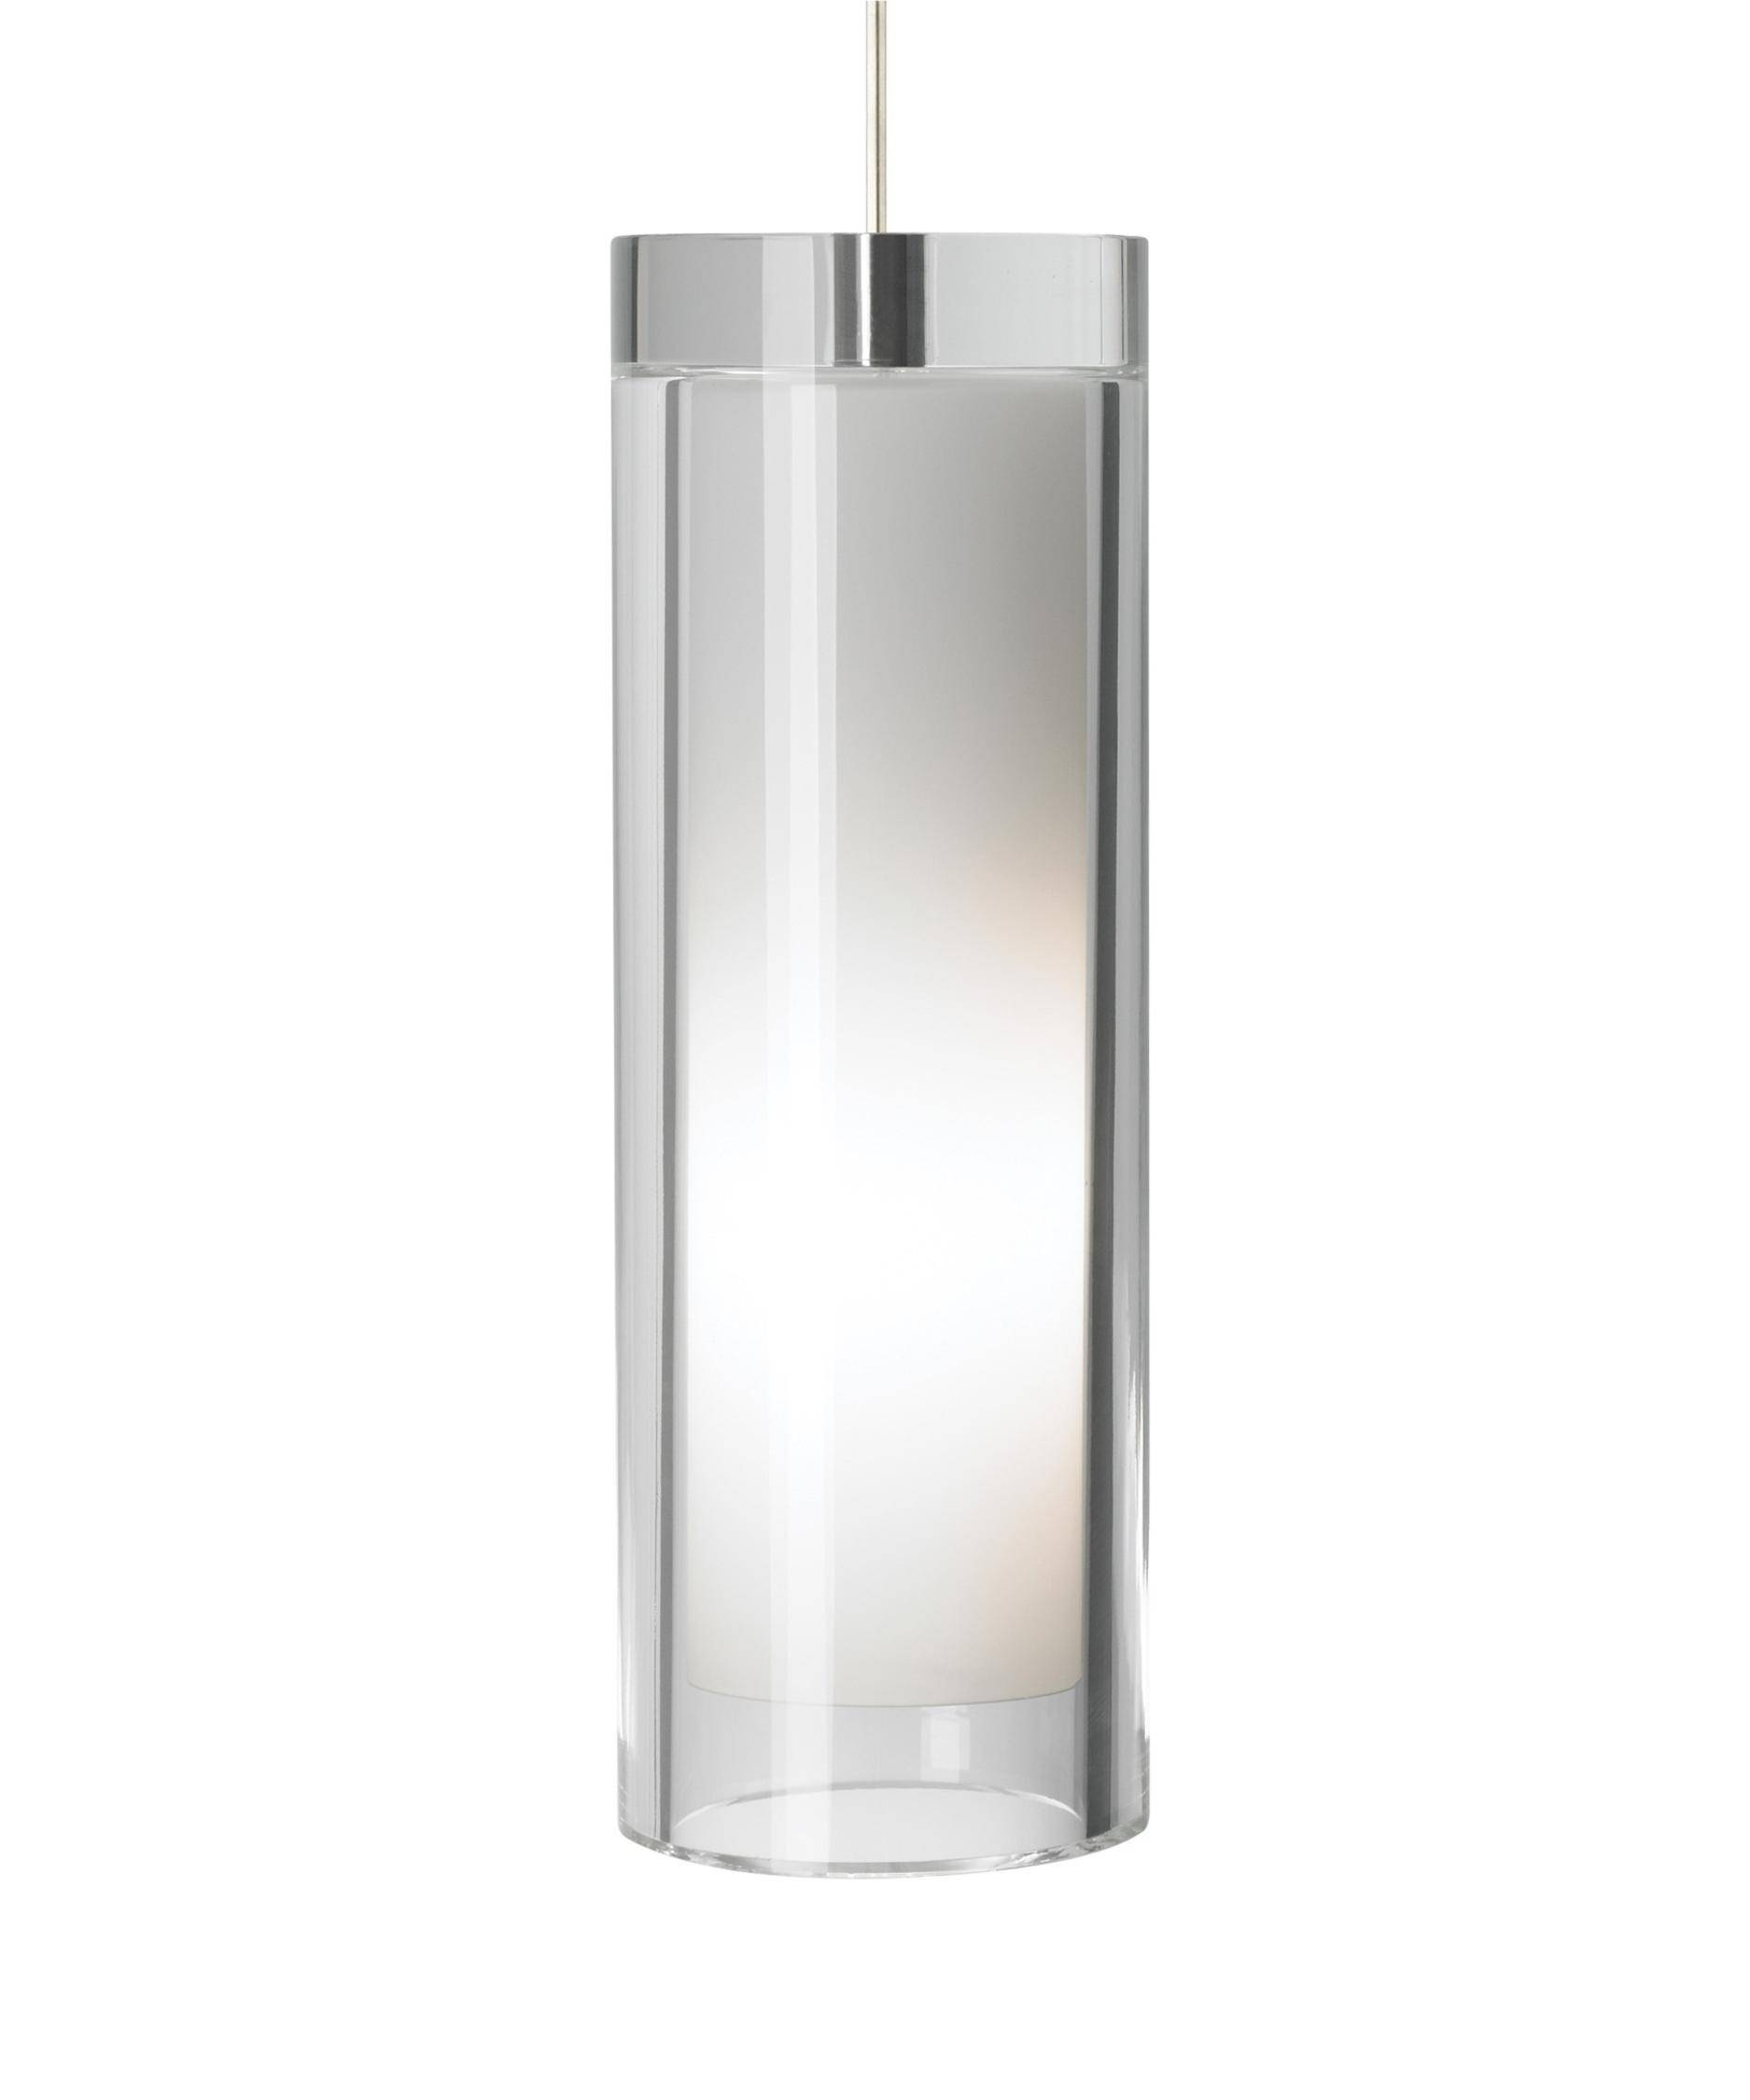 Glass Cylinder Lamp Shade Smoked Pendant Light Shades Factorylux Pertaining To Cylinder Pendant Lights (View 15 of 15)